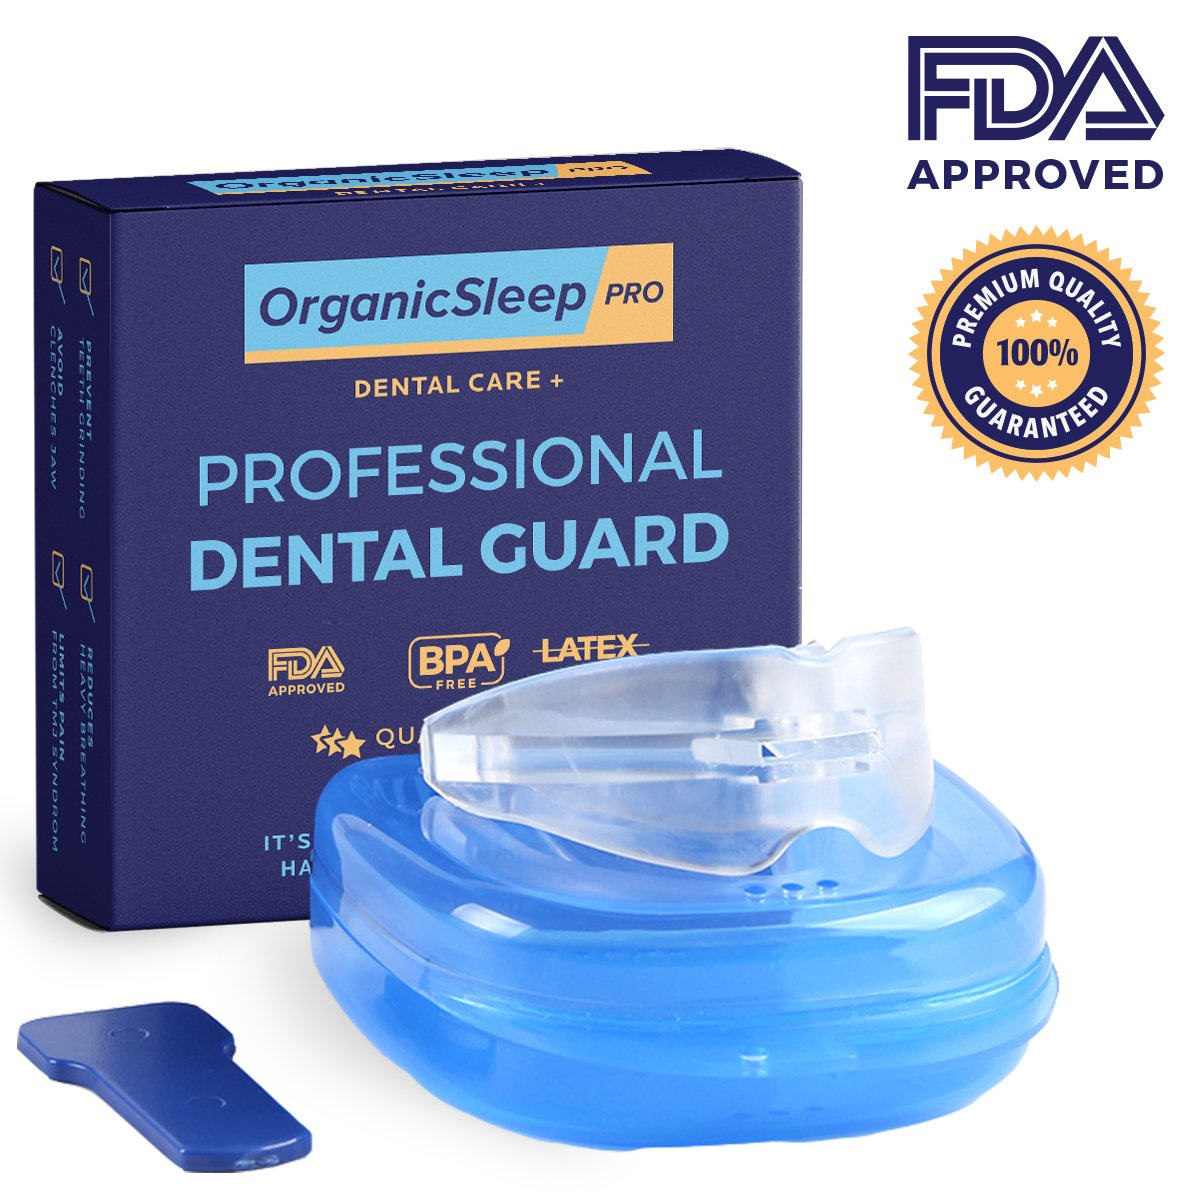 Sleep Night Mouth Guard. Bruxism Eliminator Sleep Aid Mouthpiece, For Sleep Disorders. Keeps Airways Open & Increases Oxygen Levels for a Peaceful, Comfortable Sleep. Snoring Mouthpiece & Carry Case